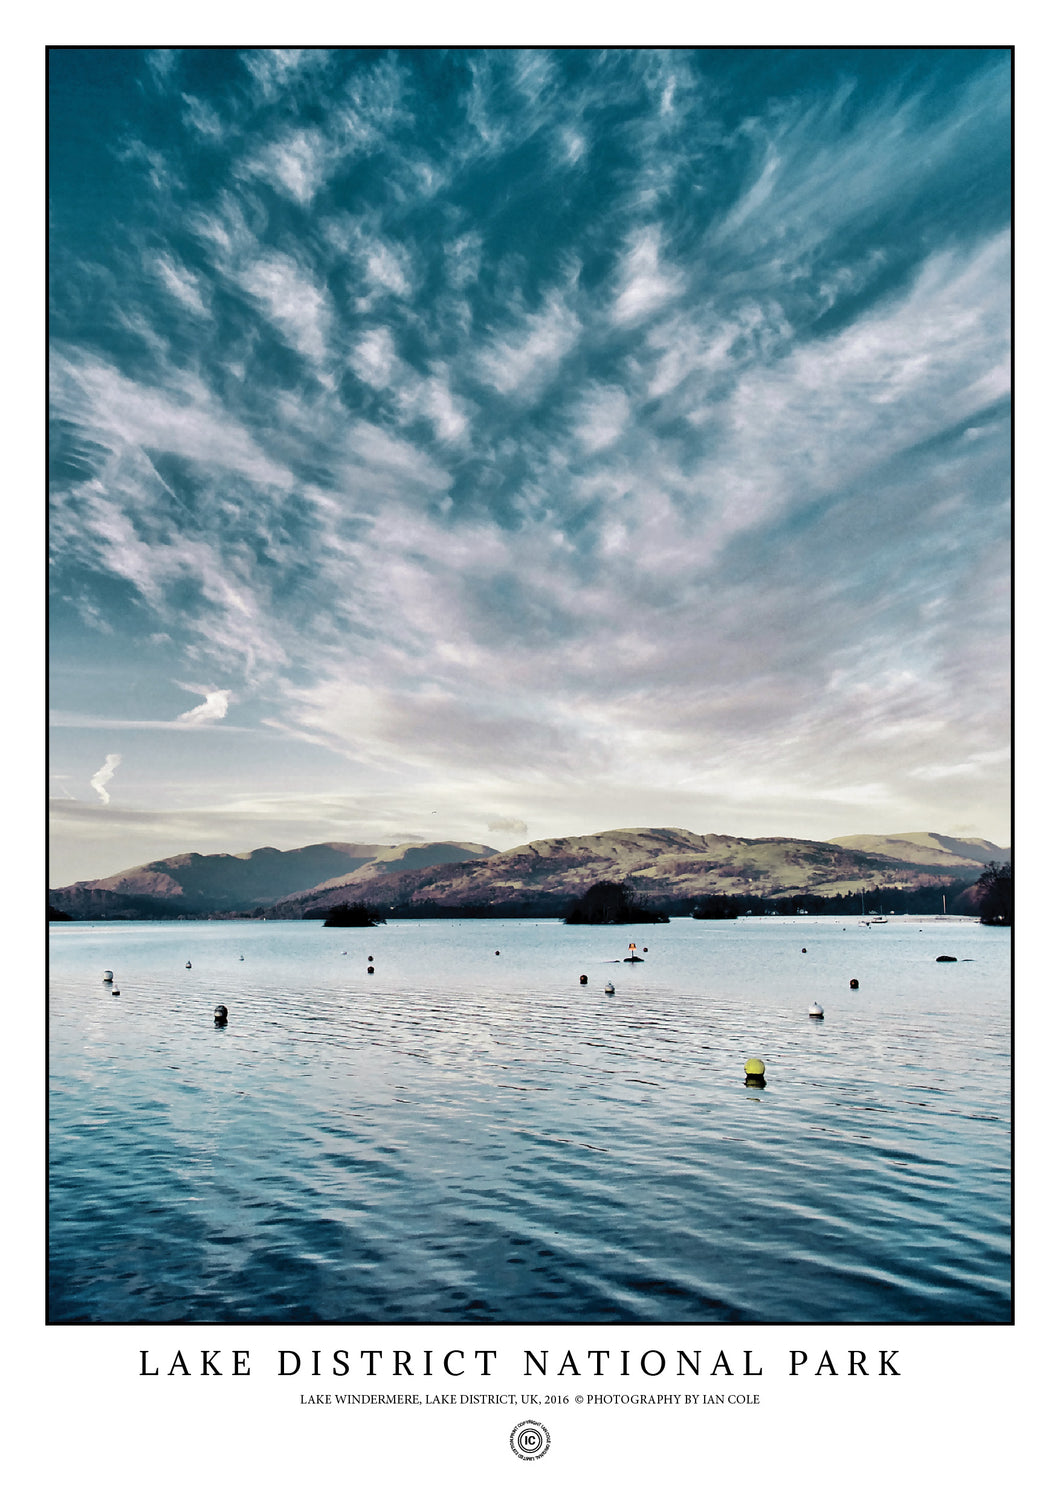 Lake Windermere, Lake District National Park (Signed Poster)